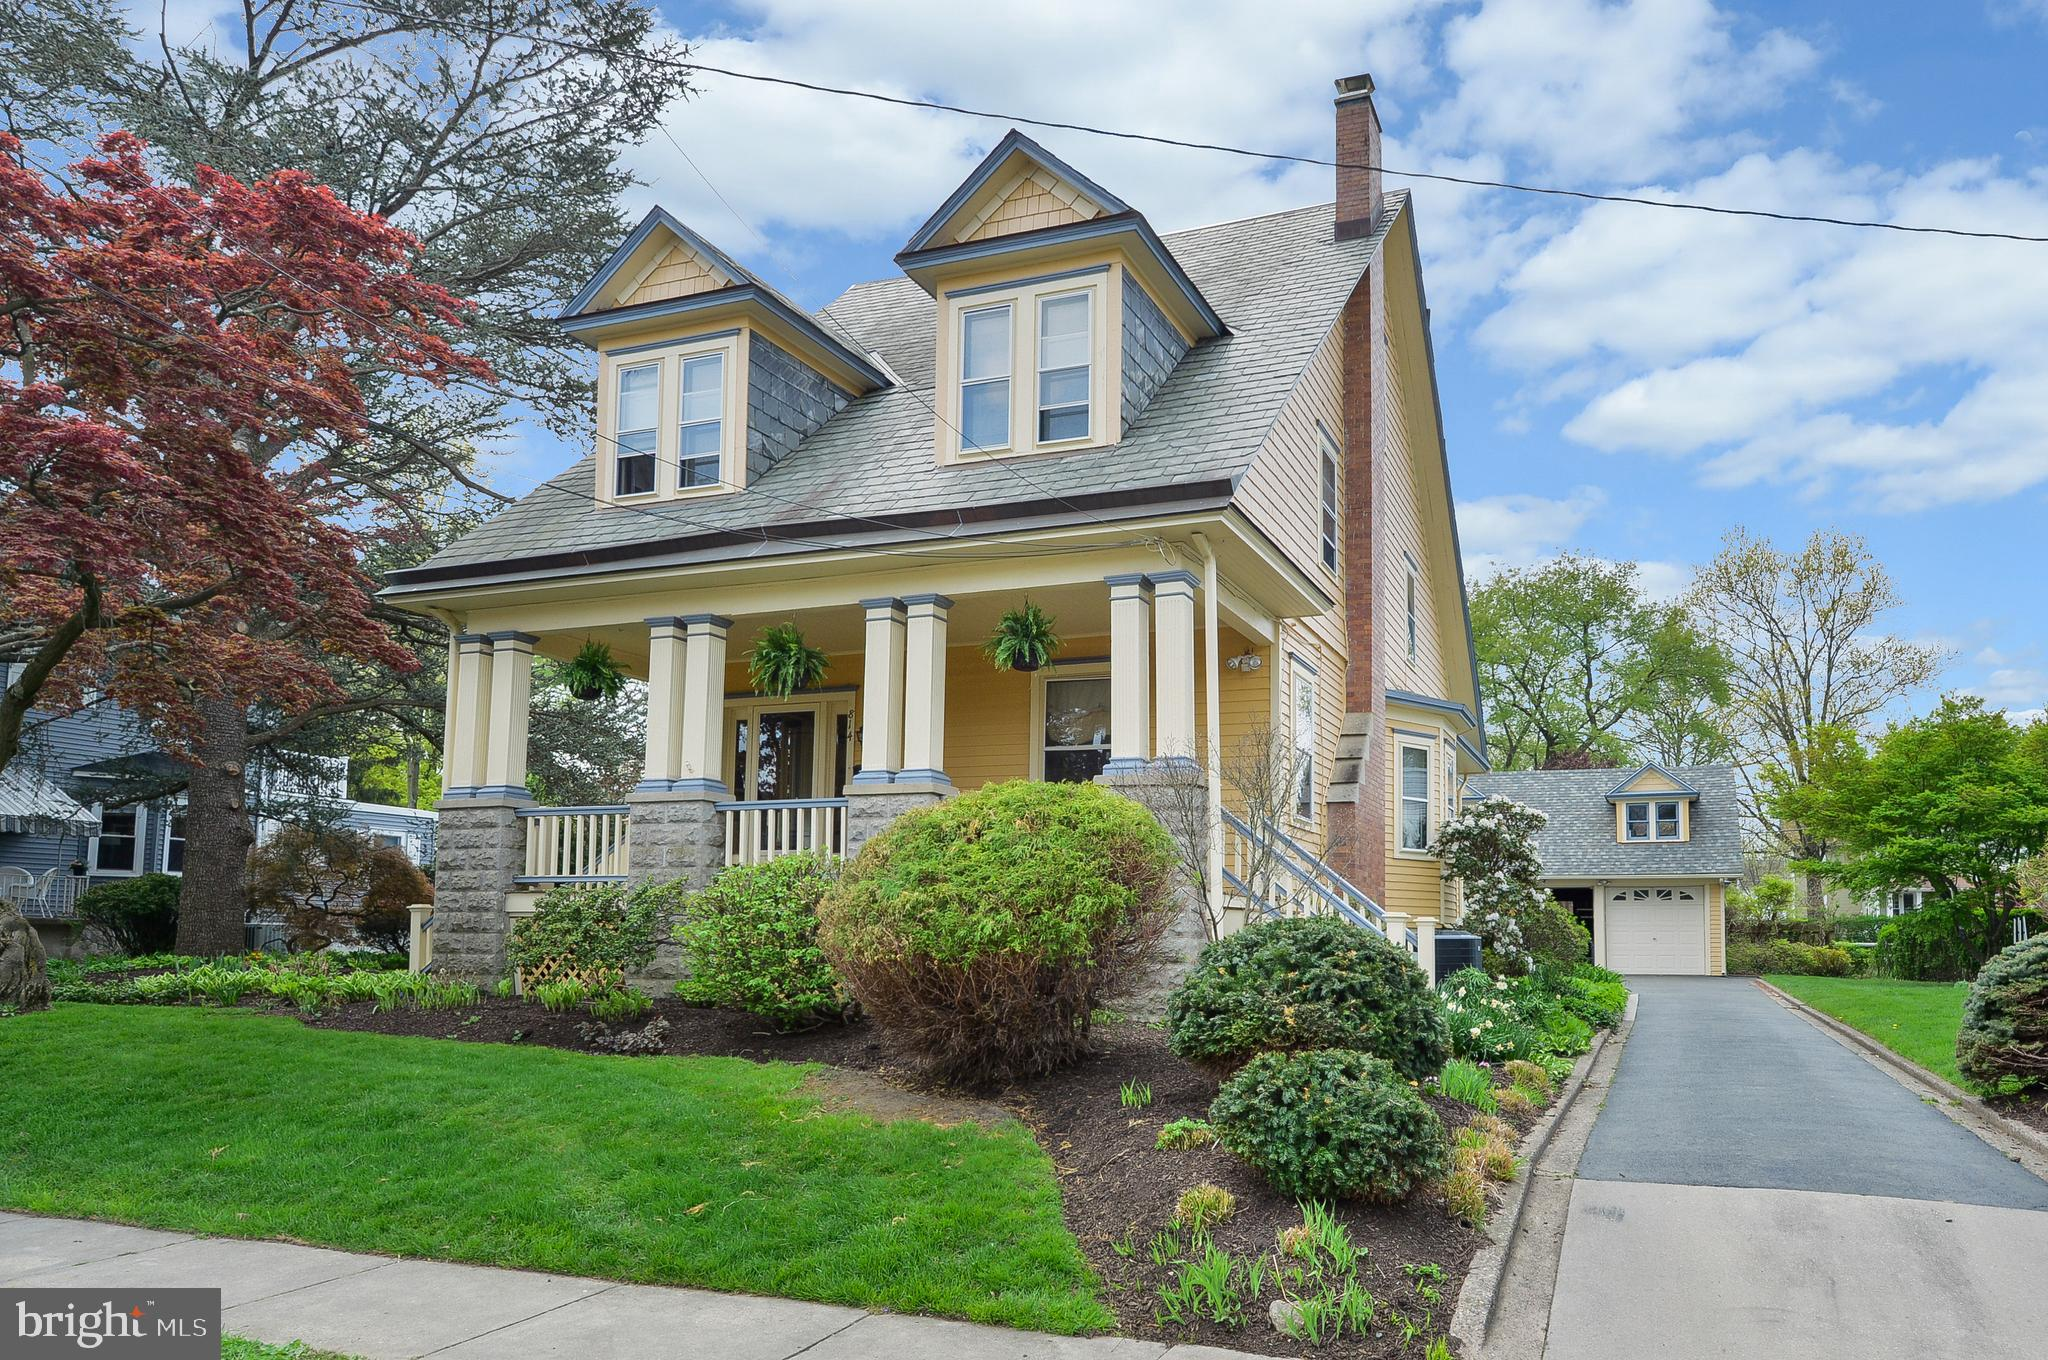 814 STOKES, COLLINGSWOOD, NJ 08108